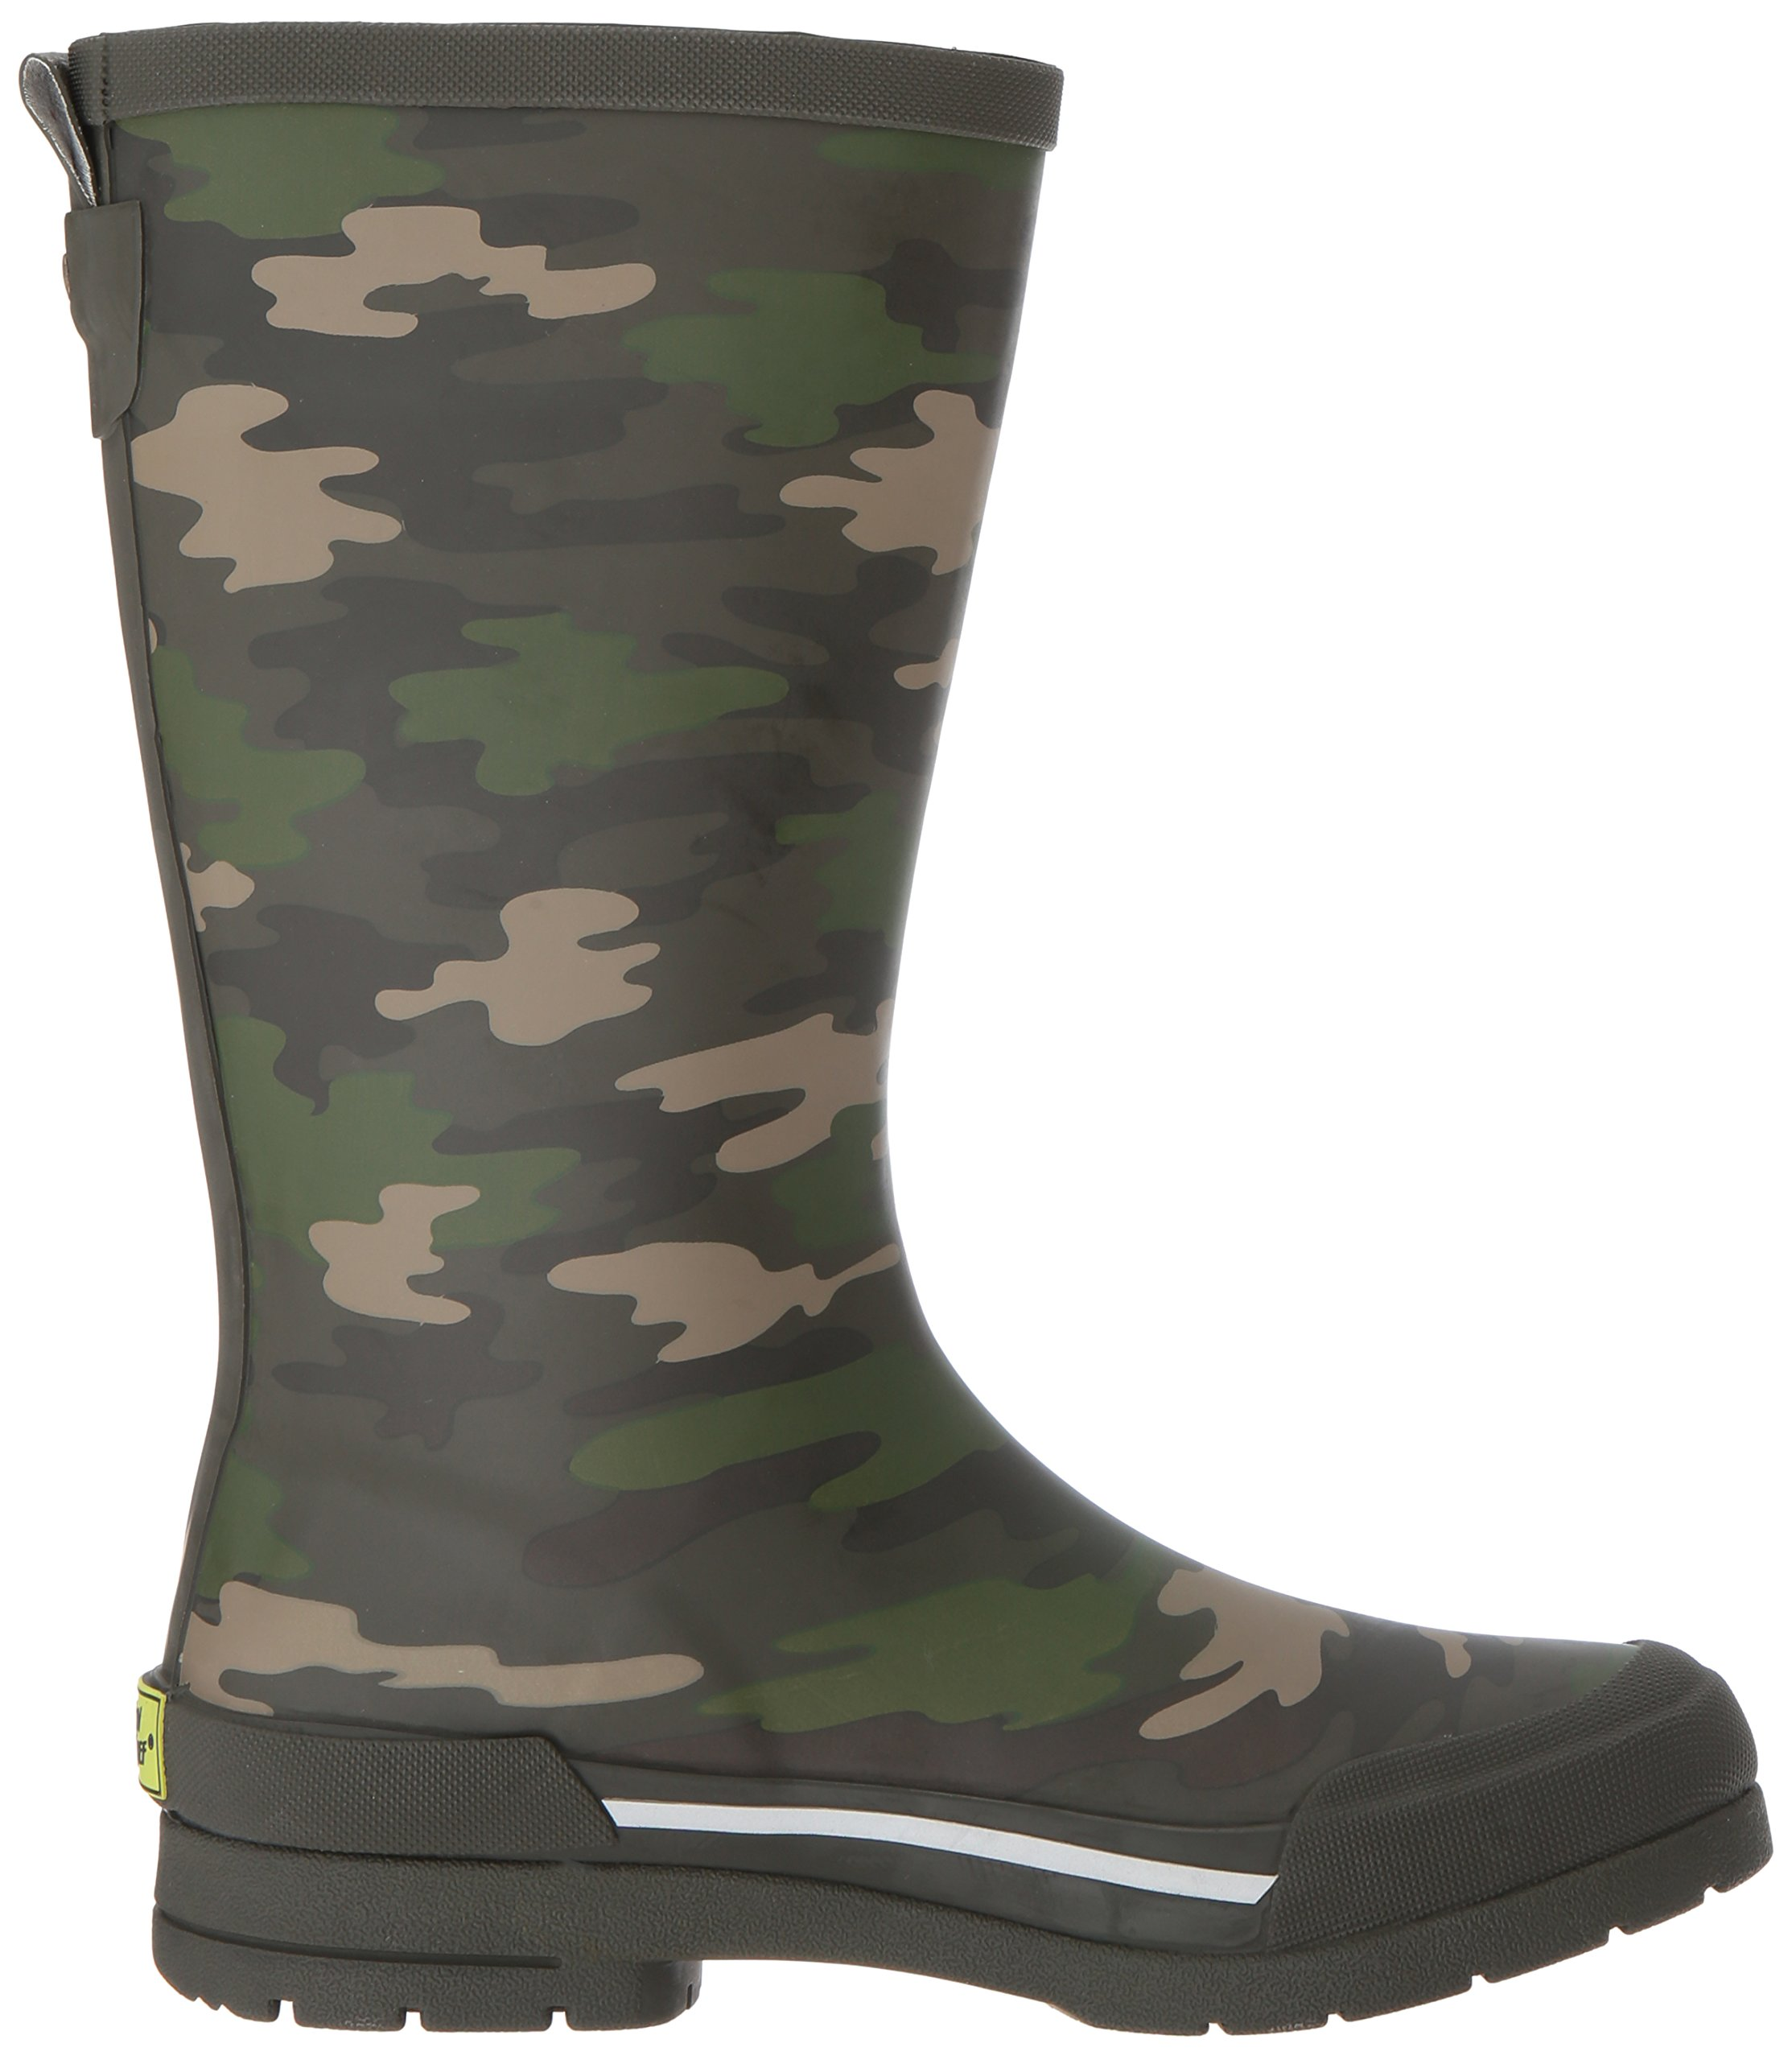 Western Chief Boys Waterproof Classic Youth size Rain Boots, Camo Green, 13 M US Little Kid by Western Chief (Image #7)